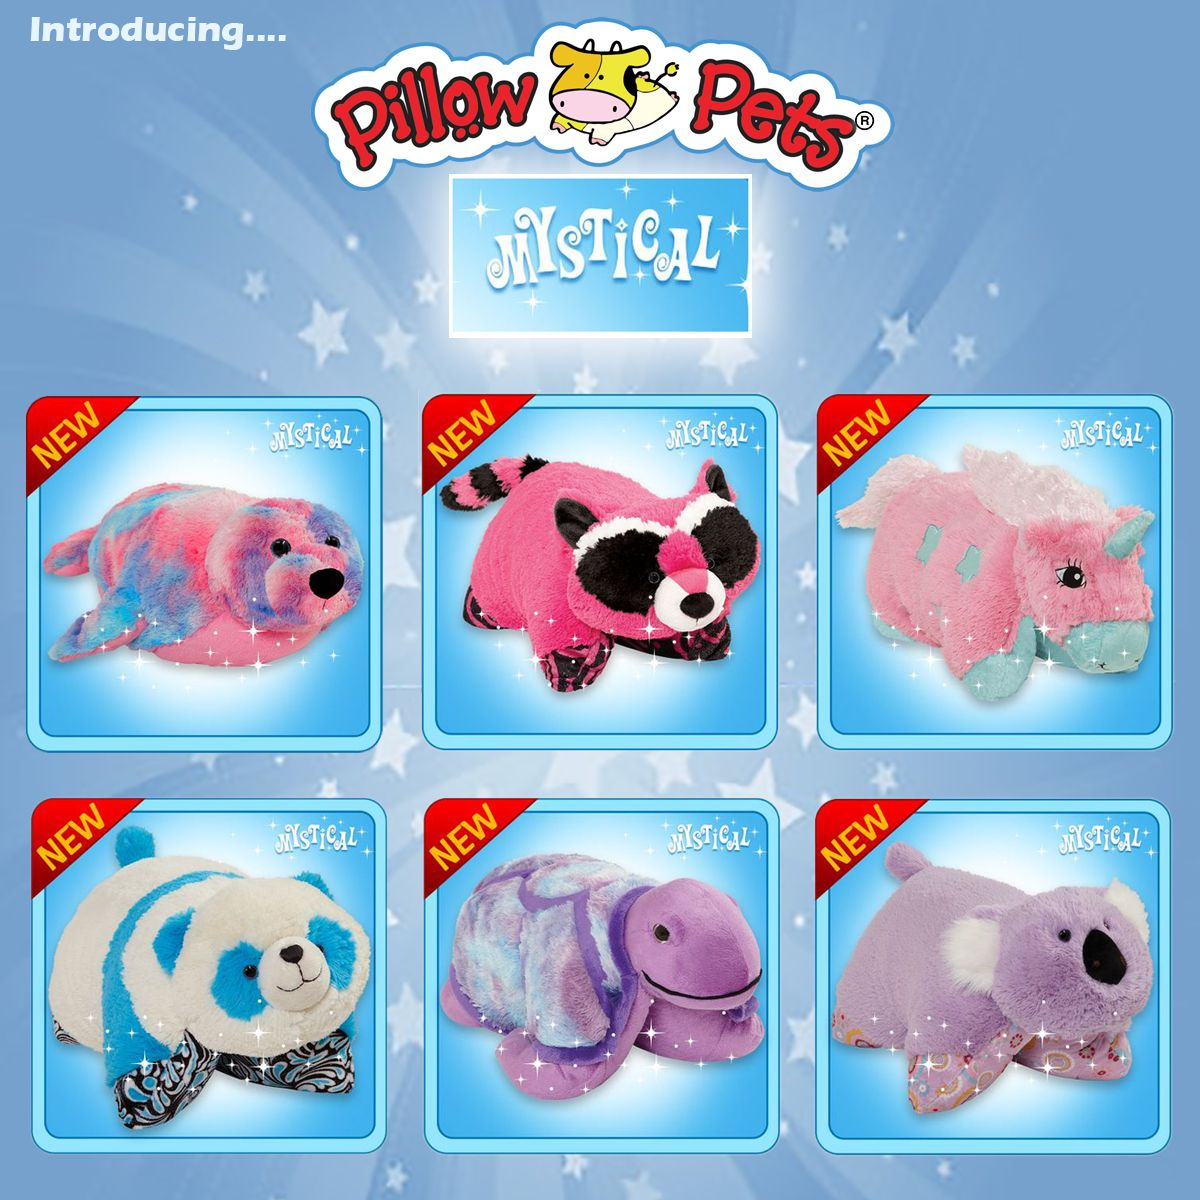 All Six Of The New Mystical Line Pillow Pets Animal Pillows